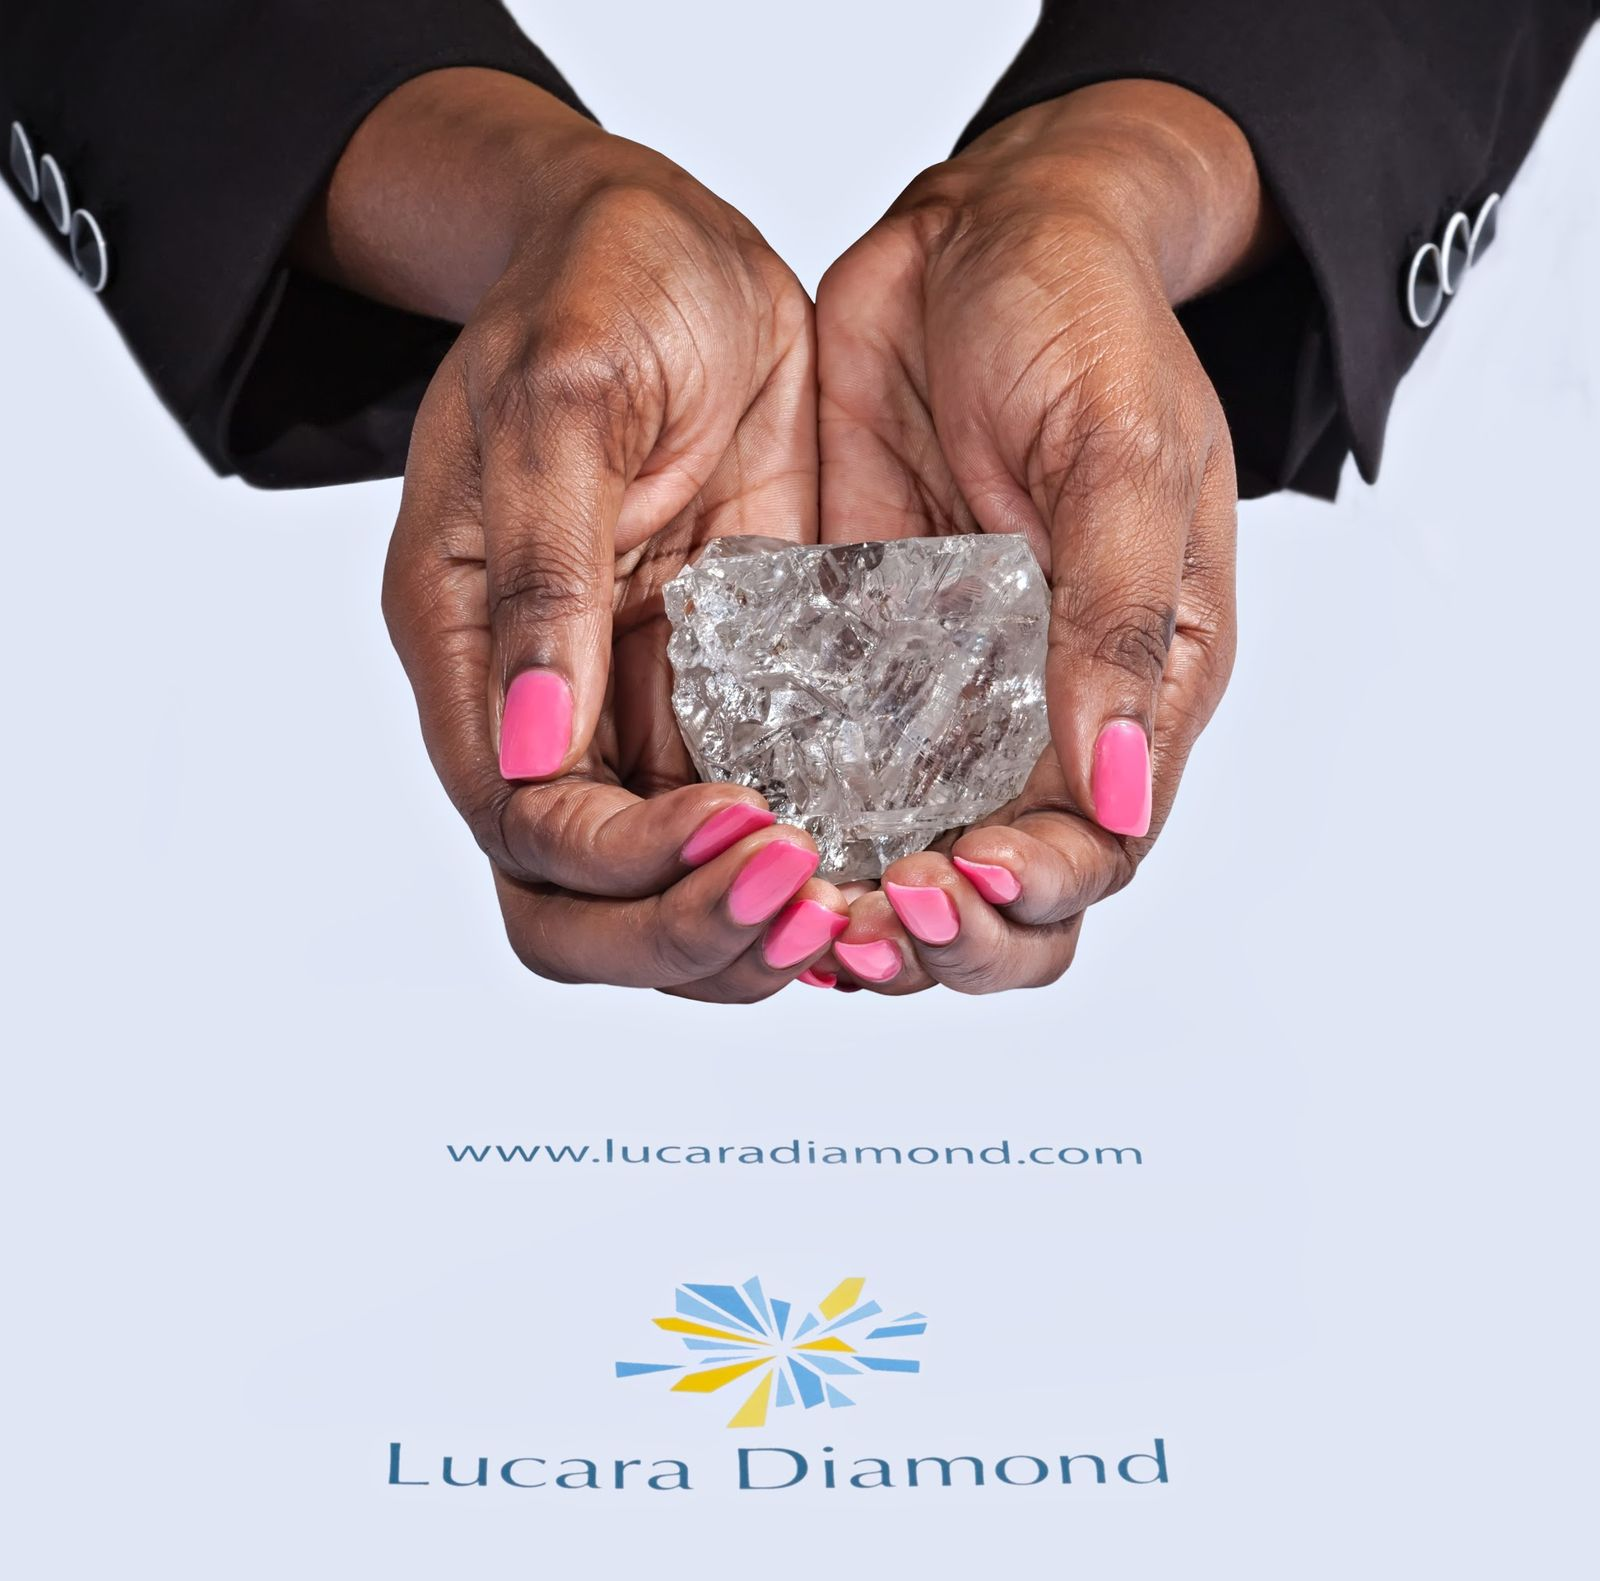 Lucara Diamond recovers 1,111 carat diamond